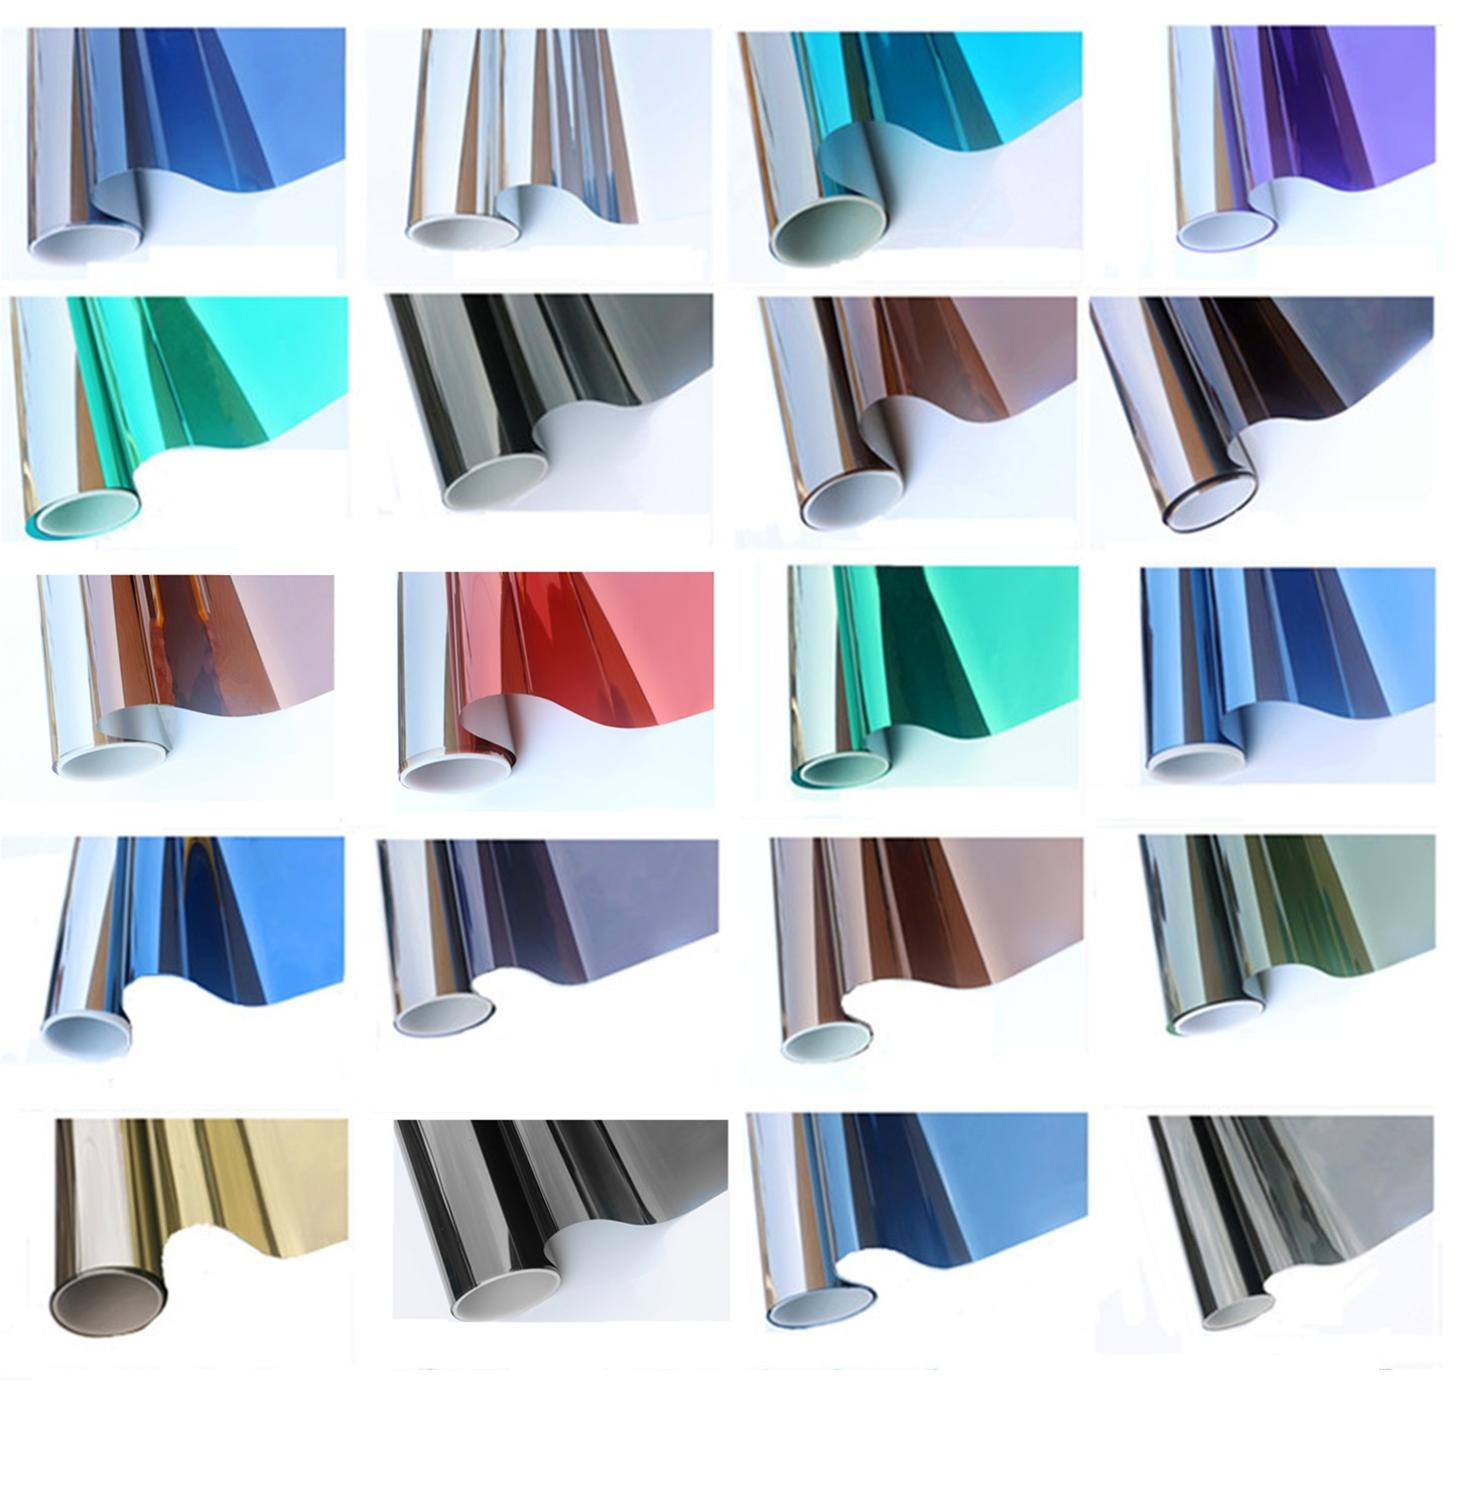 90cm*10m Insulation window film anti uv Silver color solar window film Mirror color window Stickers for Home and office decor